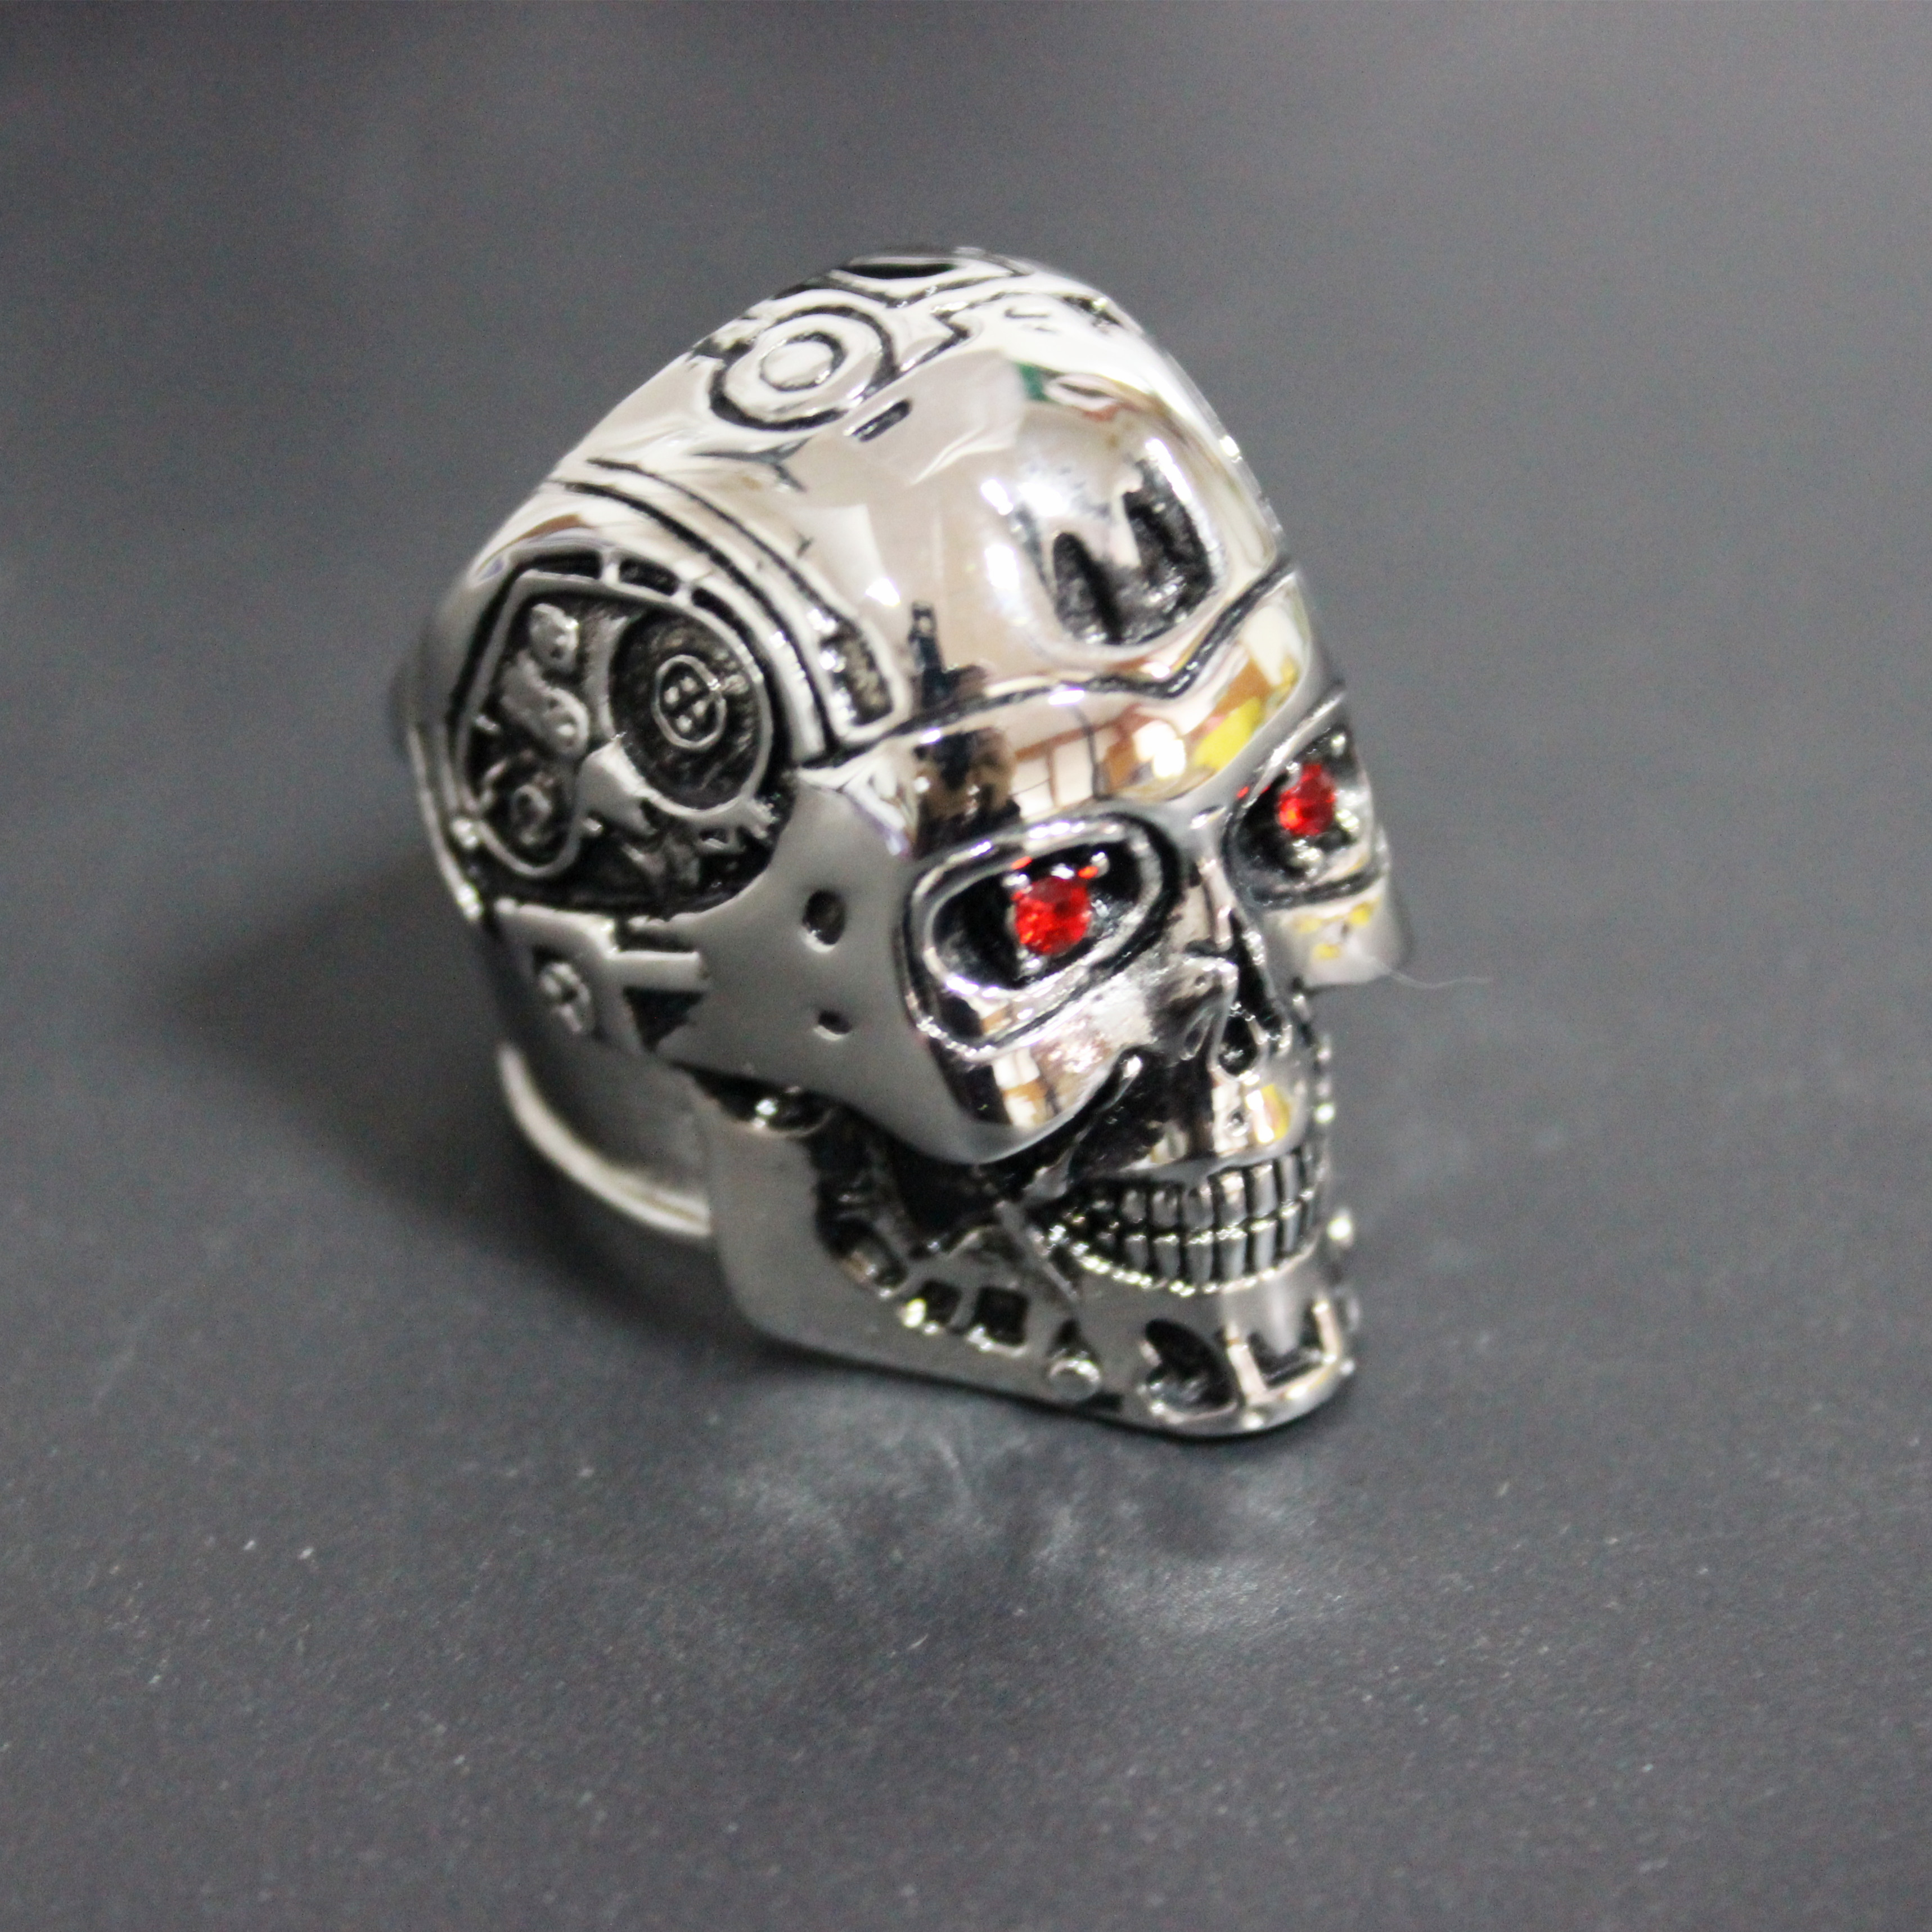 Aliexpress Buy Titanium Steel Ring Terminator Genesis